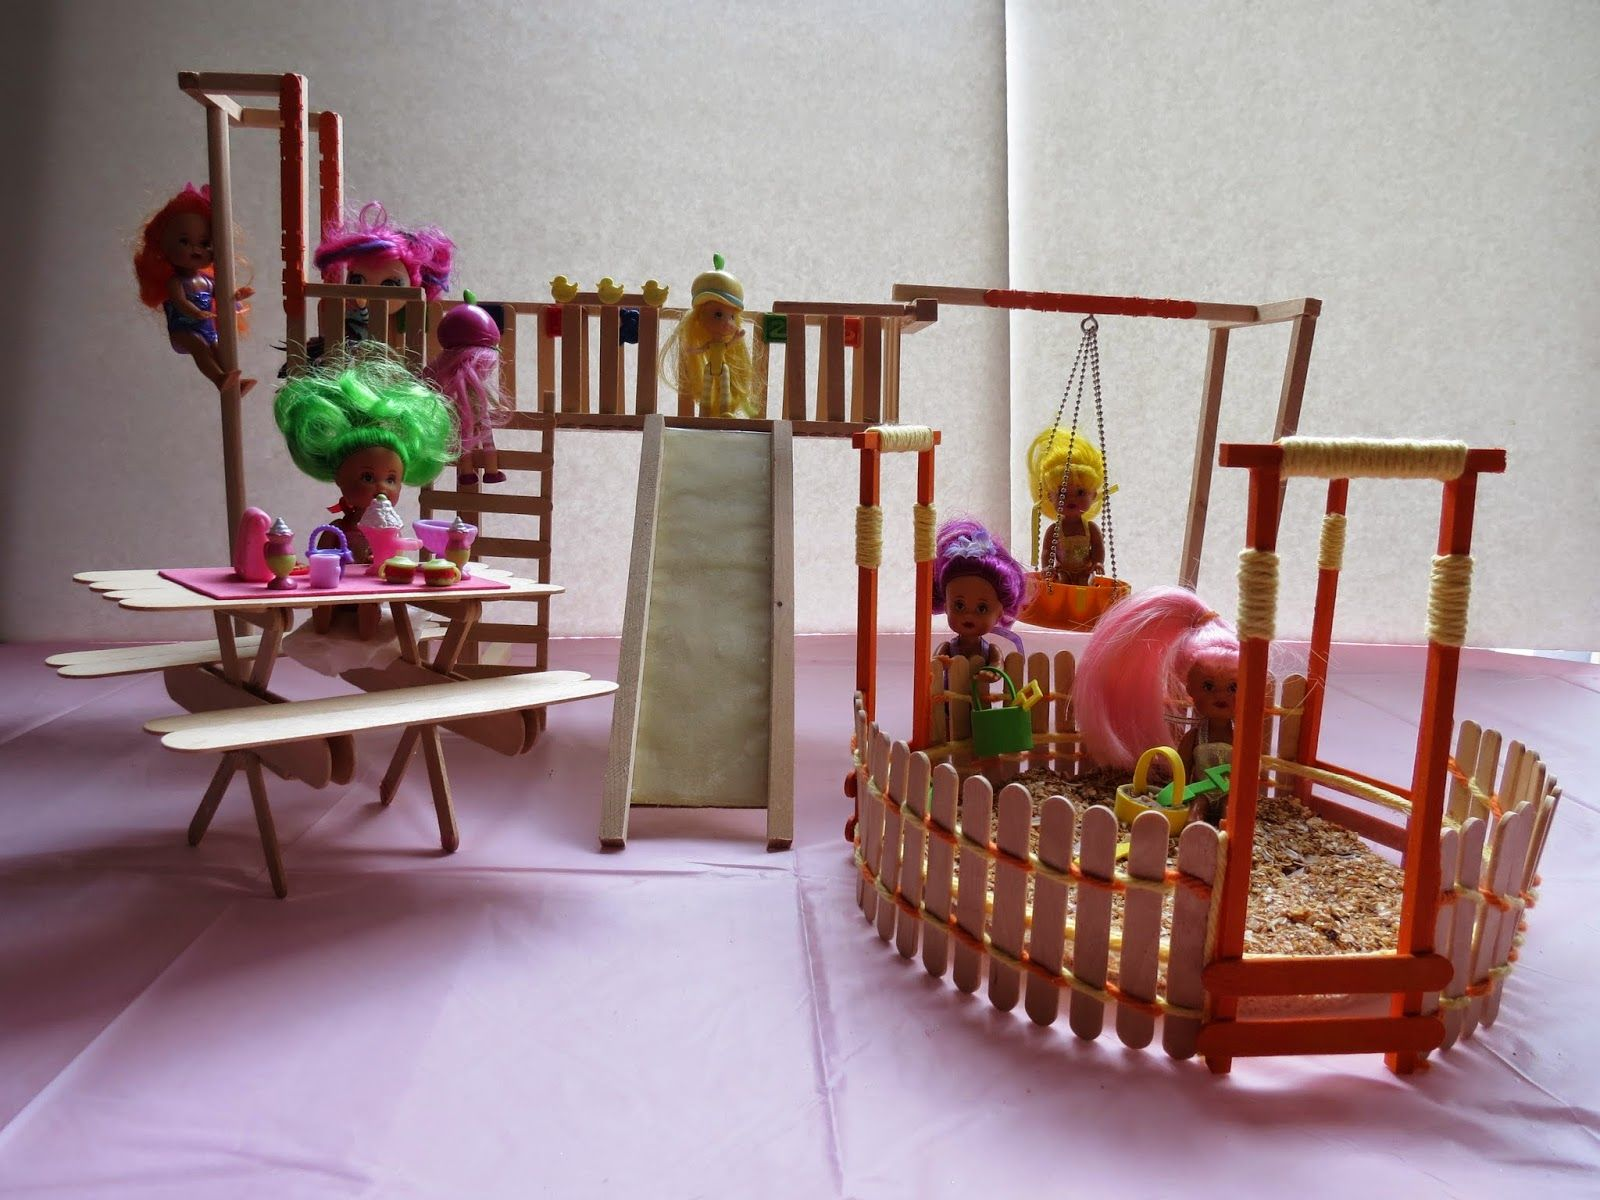 Miniature Doll Playground Crafts Diy From My Blog